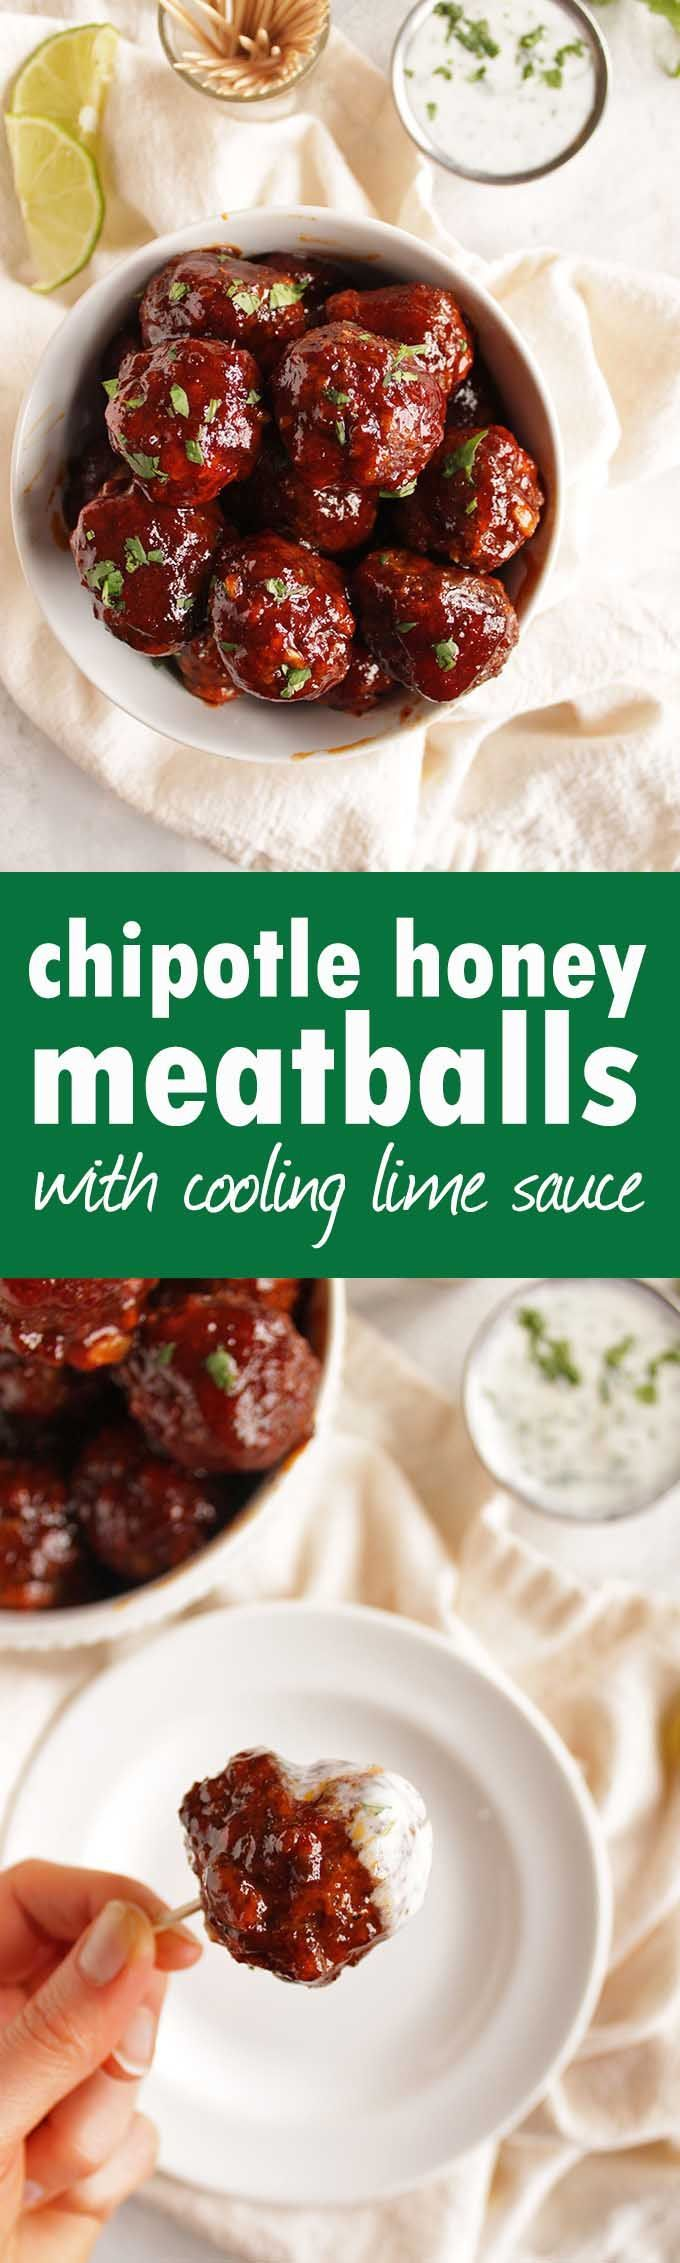 Spicy chipotle honey meatballs with cooling lime cilantro sauce - The perfect appetizer recipe for any party. Spicy, sweet, and smoky with a cooling cilantro lime sauce. Super easy to make. (Gluten Free) | robustrecipes.com